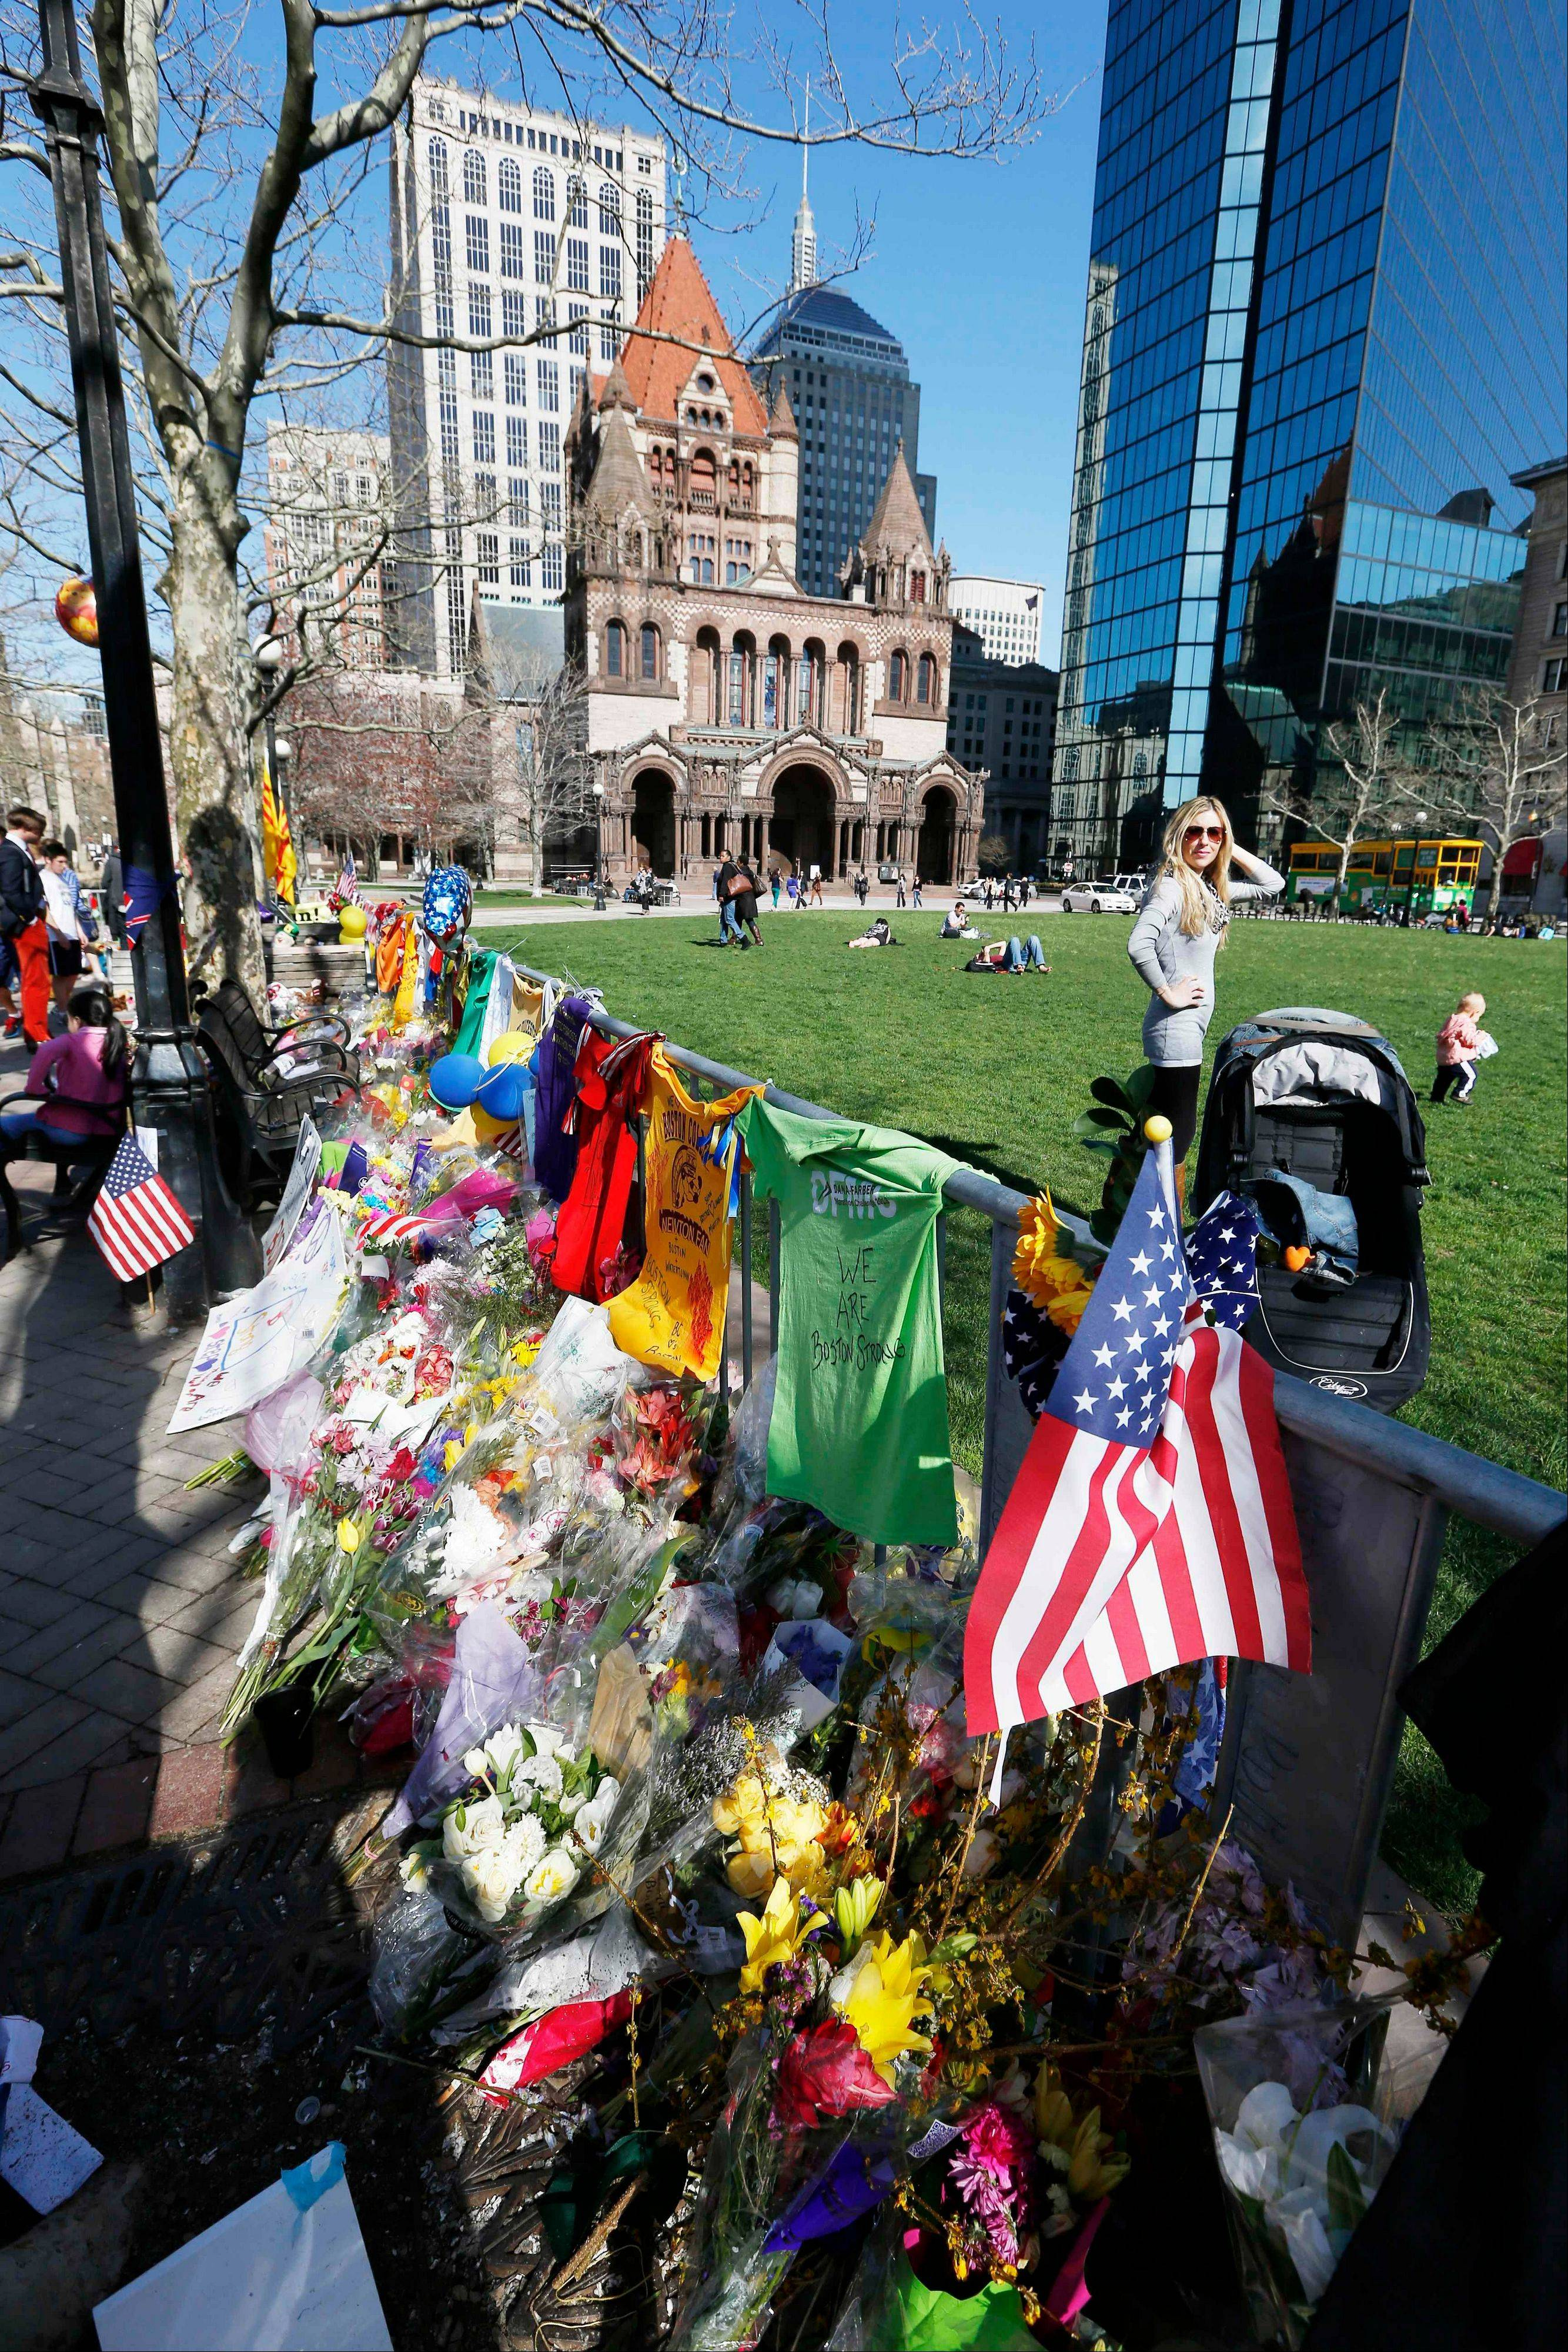 Various items were on display Wednesday at a makeshift memorial to the bombing victims on Boylston Street in Boston.